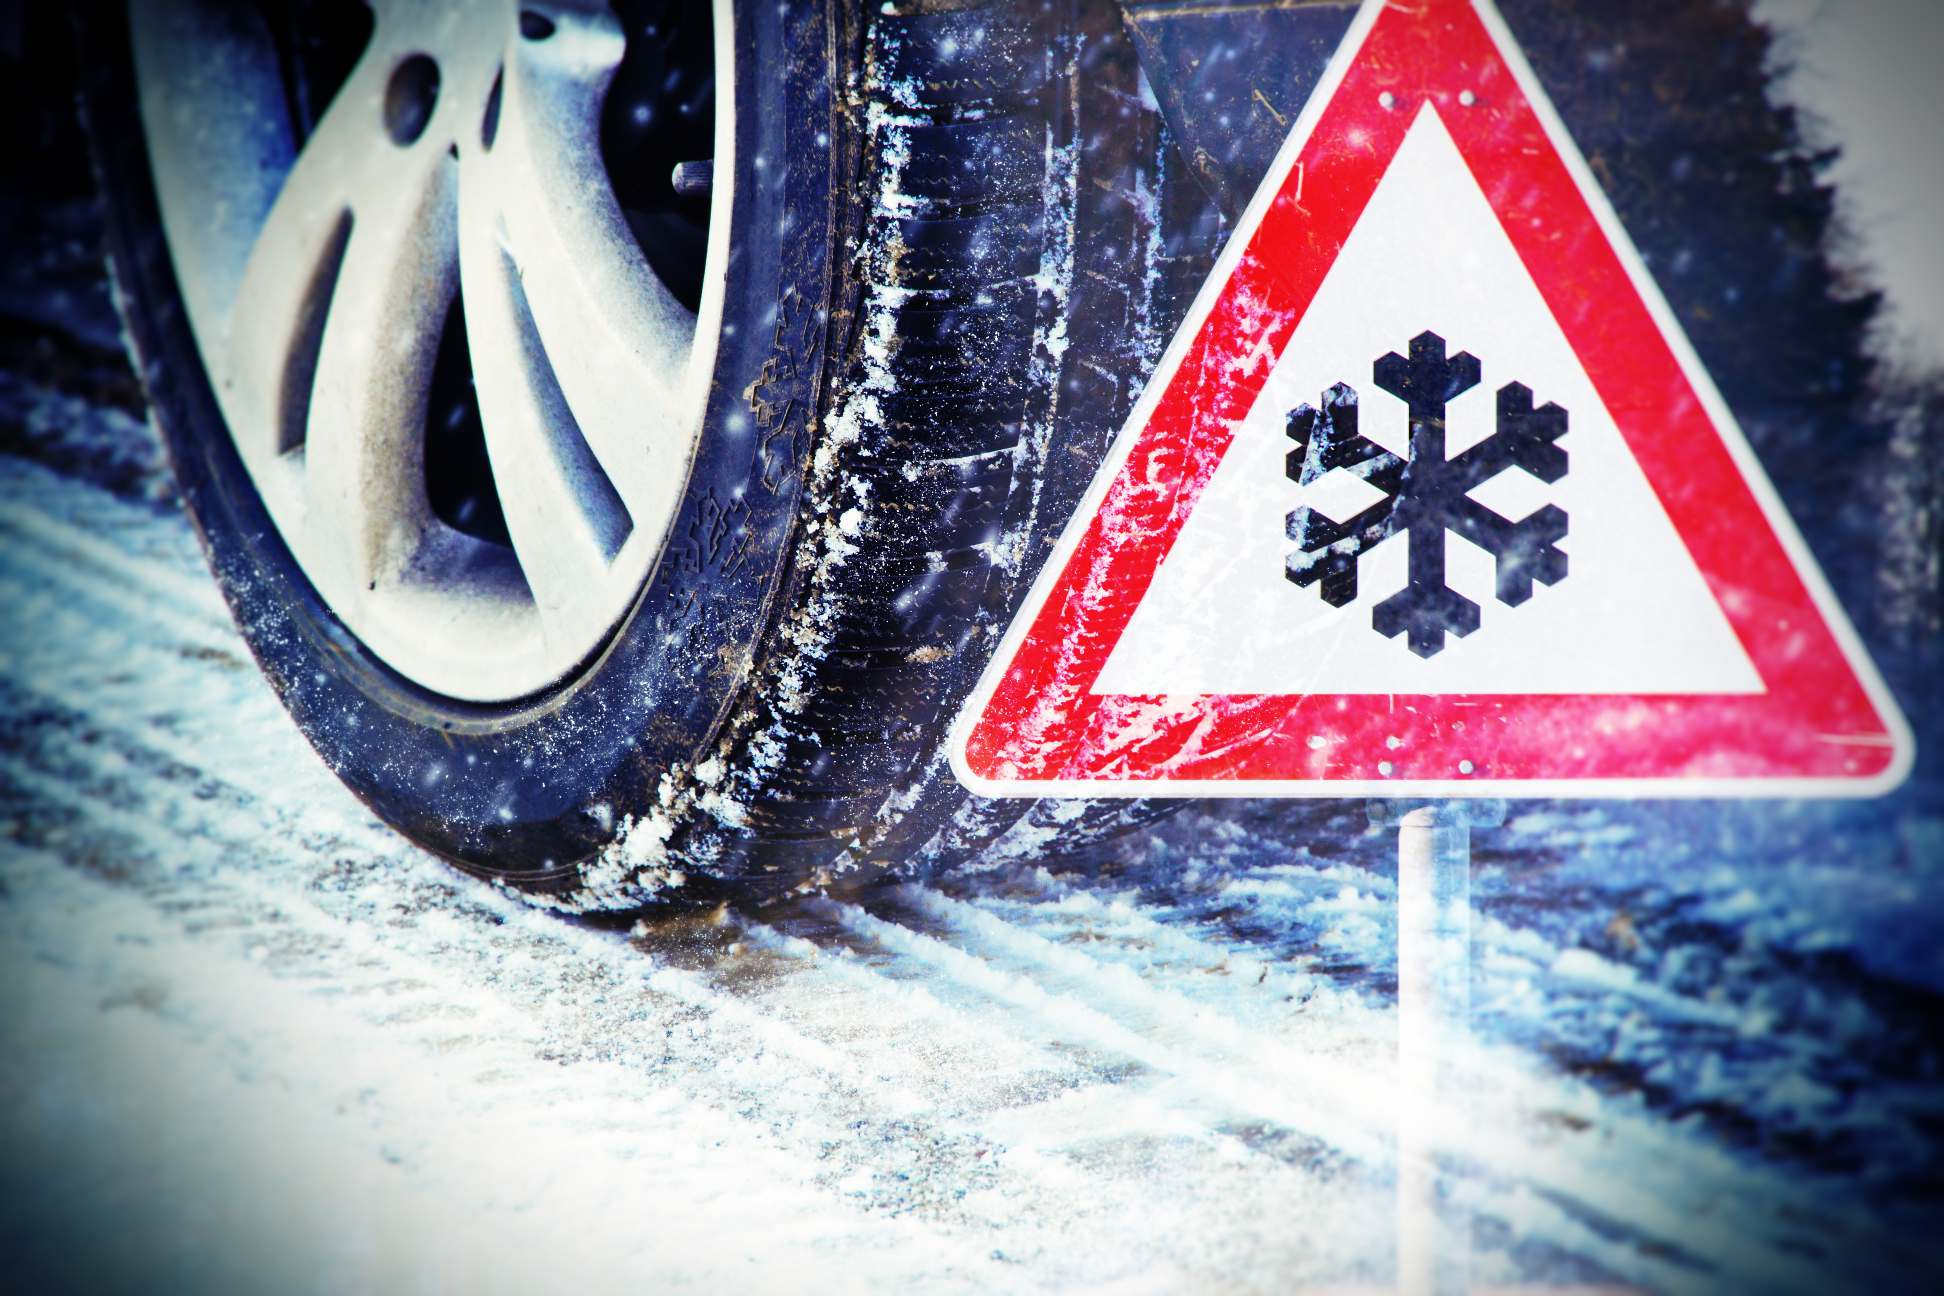 Driving in harsh winter conditions